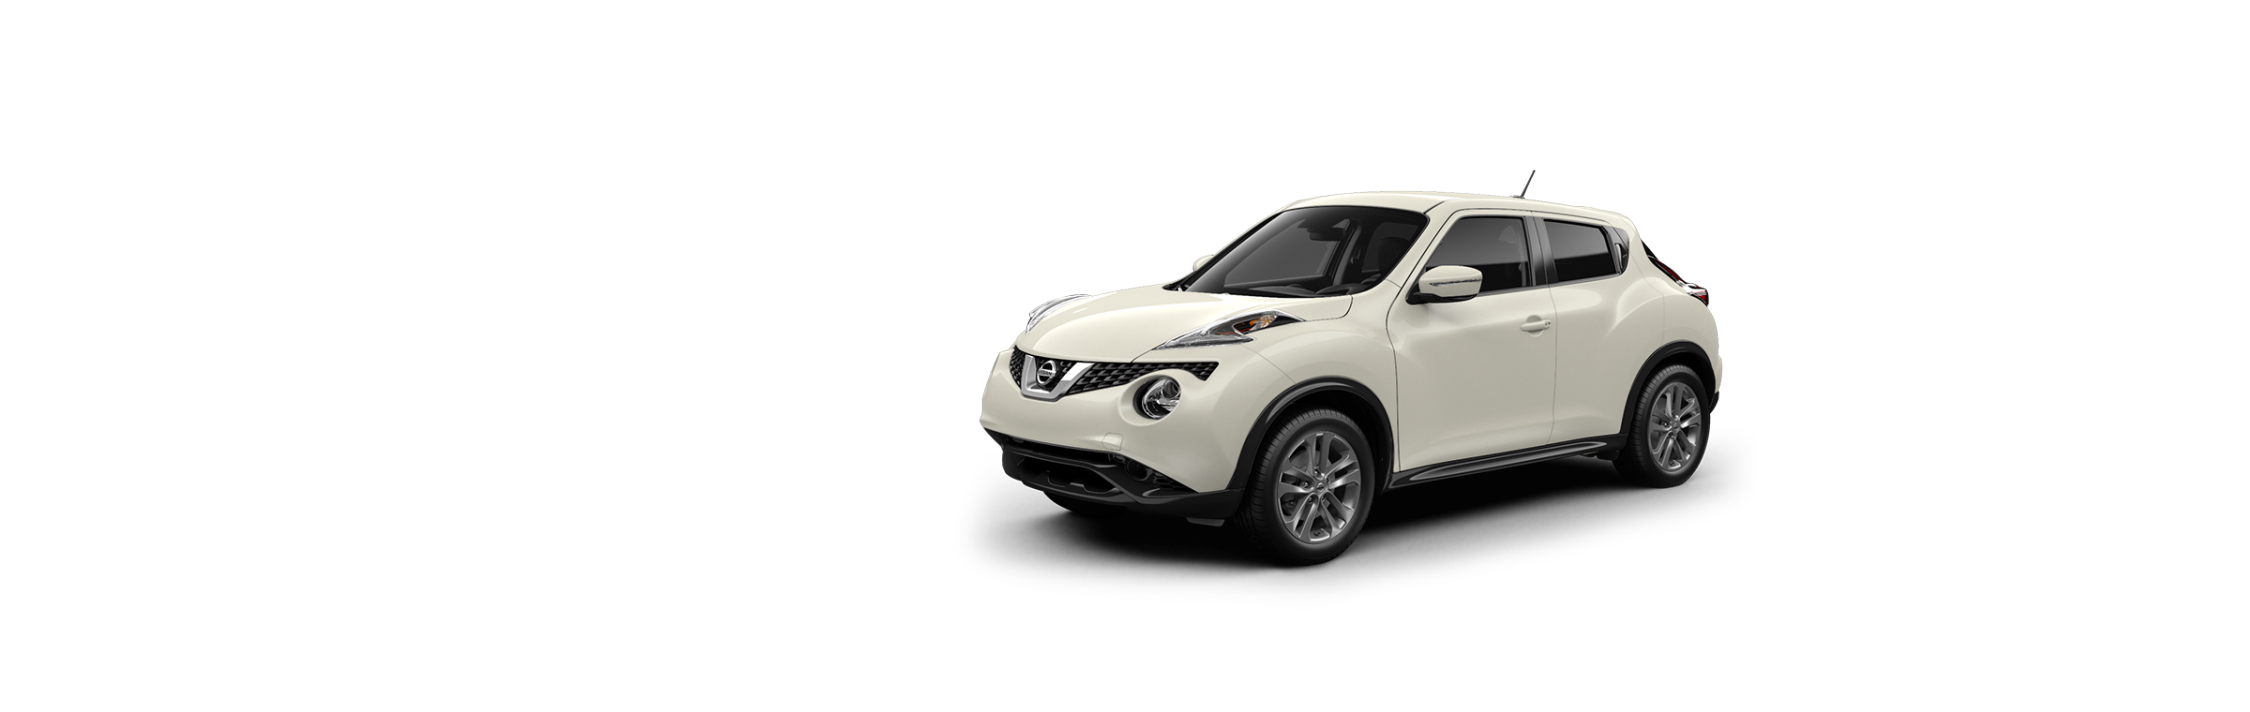 nissan cars price list in the philippines december 2017 autos post. Black Bedroom Furniture Sets. Home Design Ideas